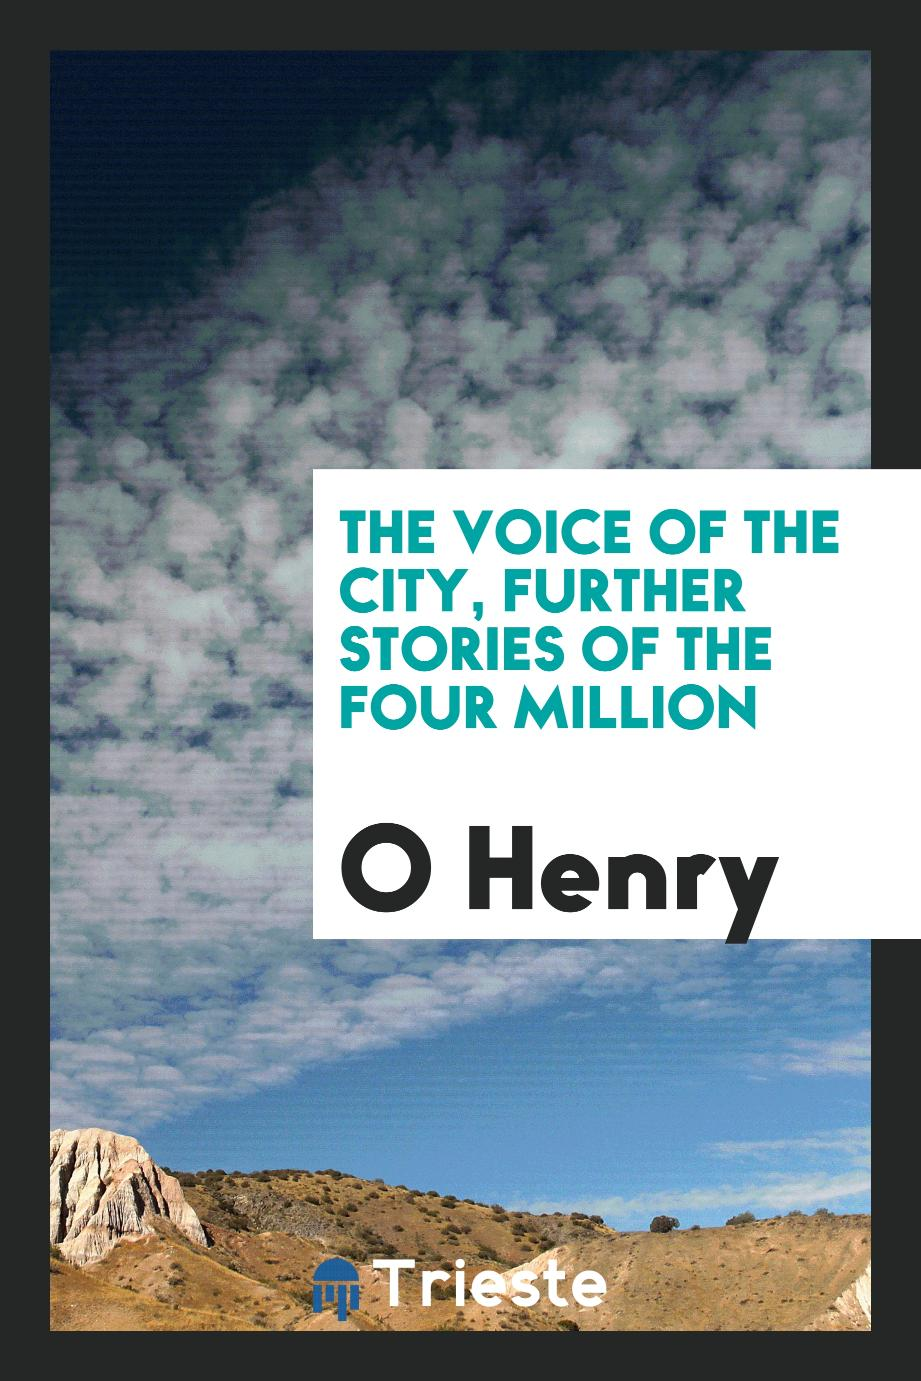 The Voice of the City, Further Stories of the Four Million